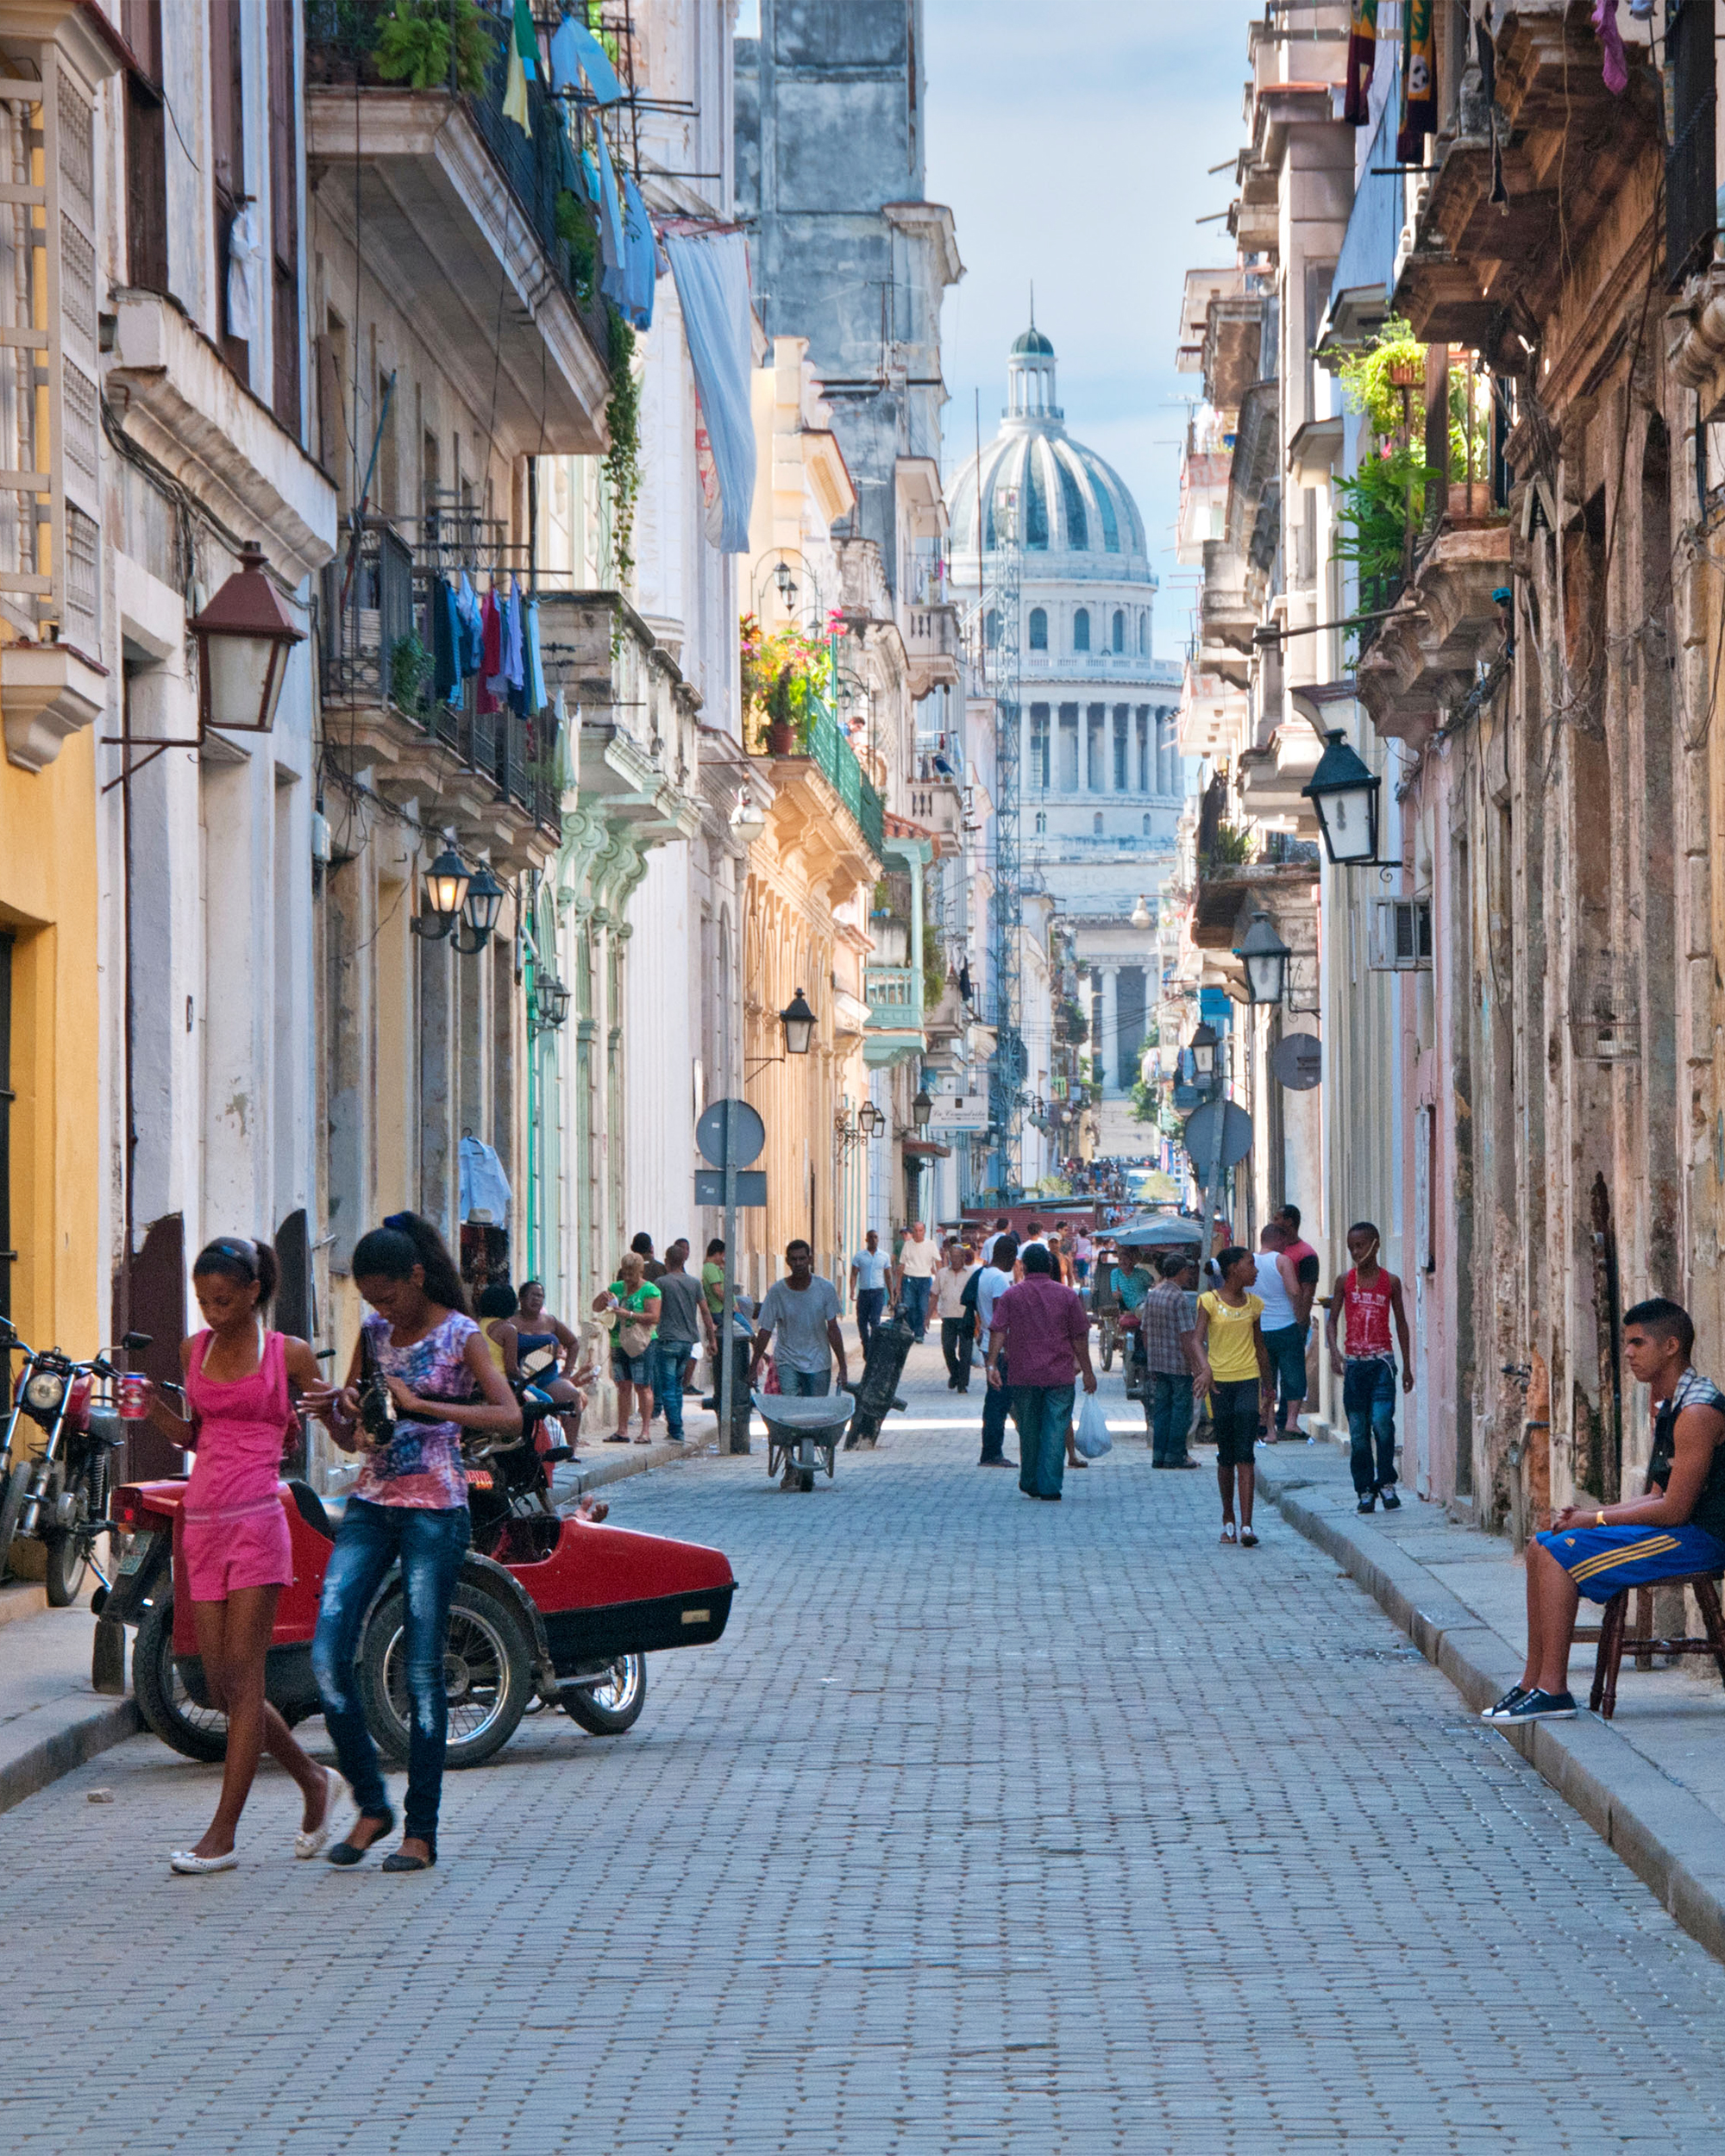 D2F574 Street Scene in Old Havana on Calle Brazil with Capitolio Building Behind, Habana Vieja, Havana, Cuba. Image shot 2013. Exact date unknown.